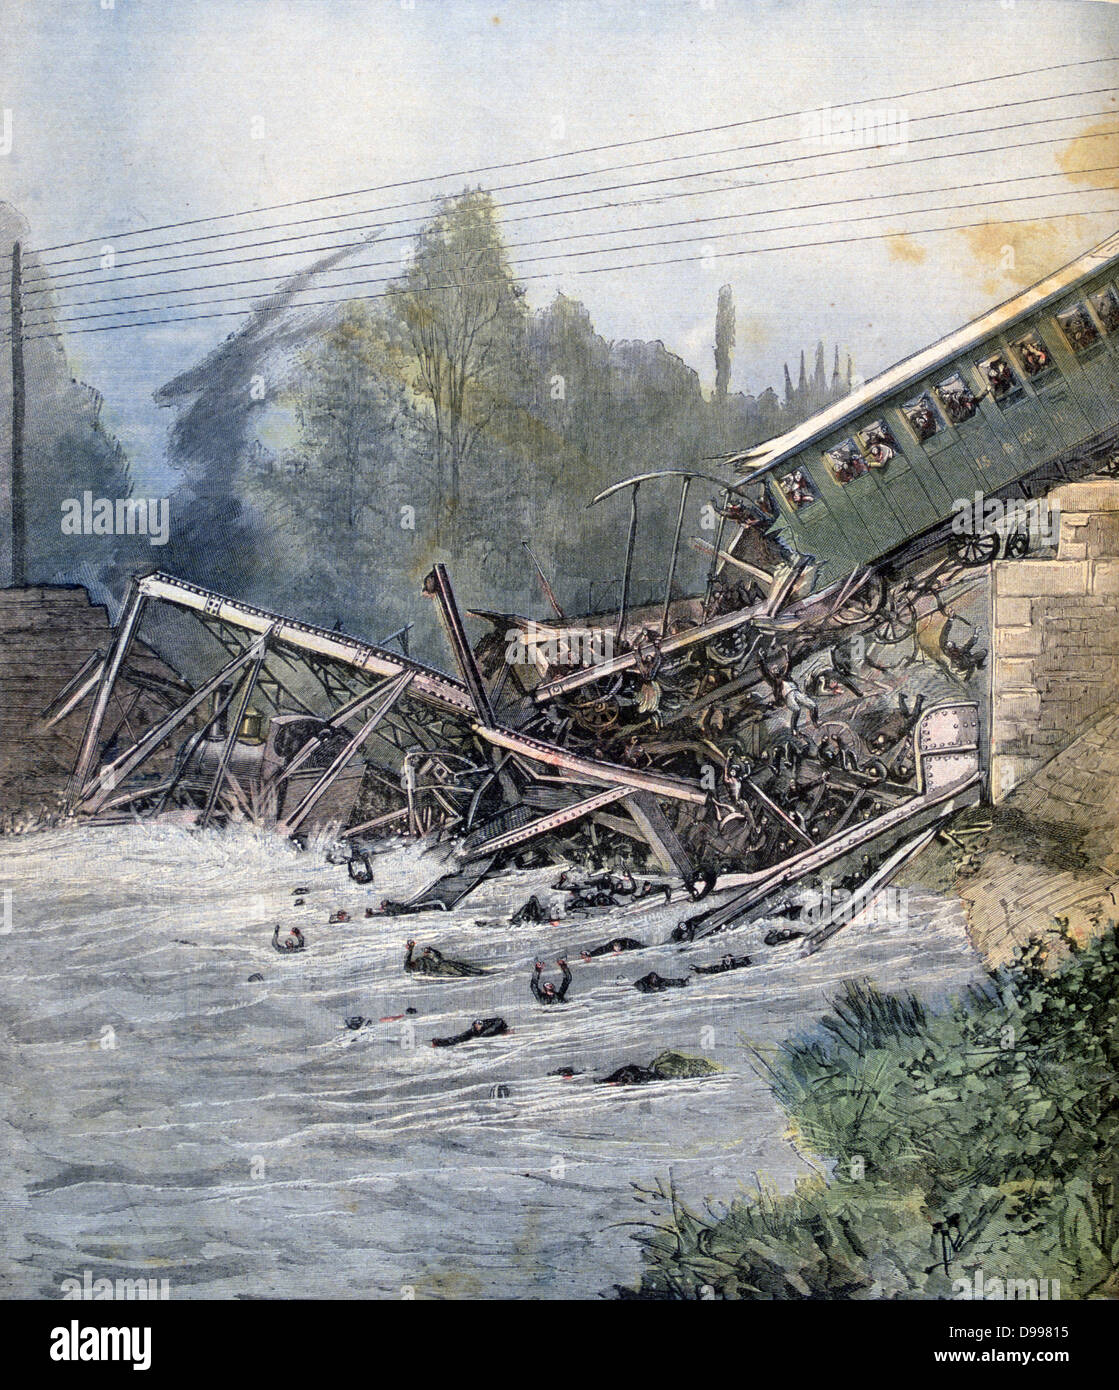 Collapse of of railway bridge over the Birs at Munchenstein, Switzerland, 14 June 1891, while a train was crossing. - Stock Image